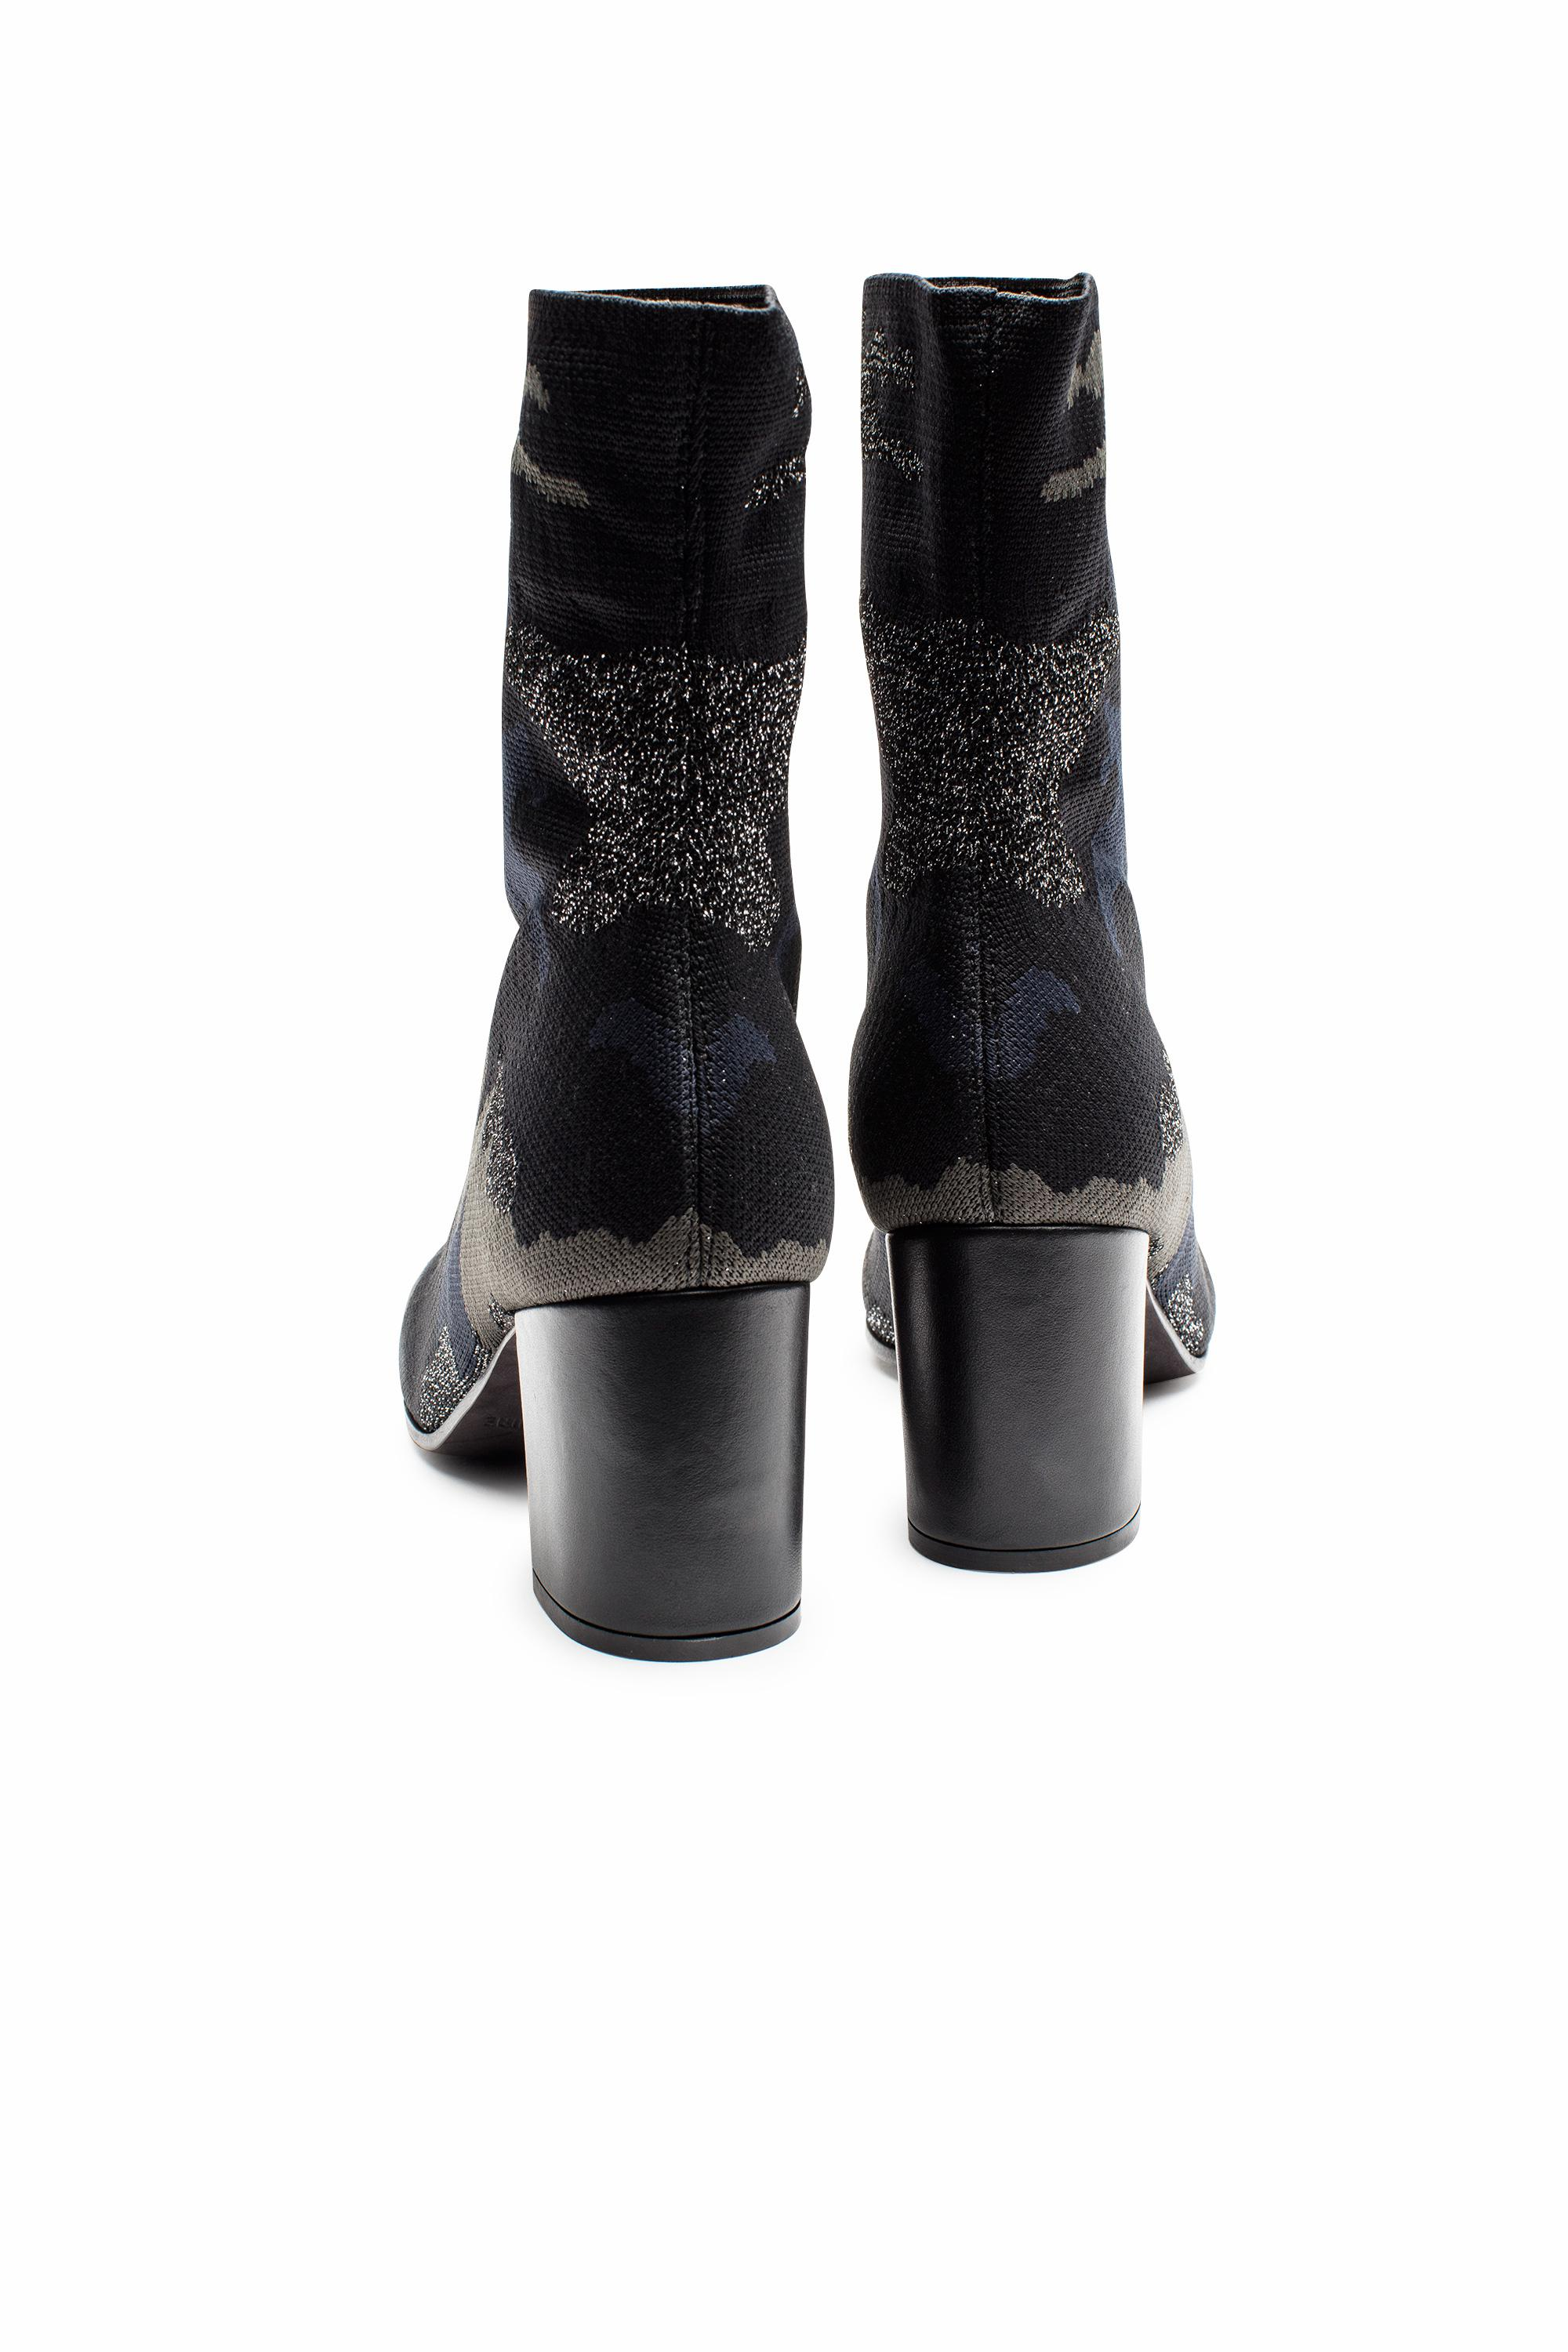 Lyst Zadig Voltaire Lena Camo Boots In Black